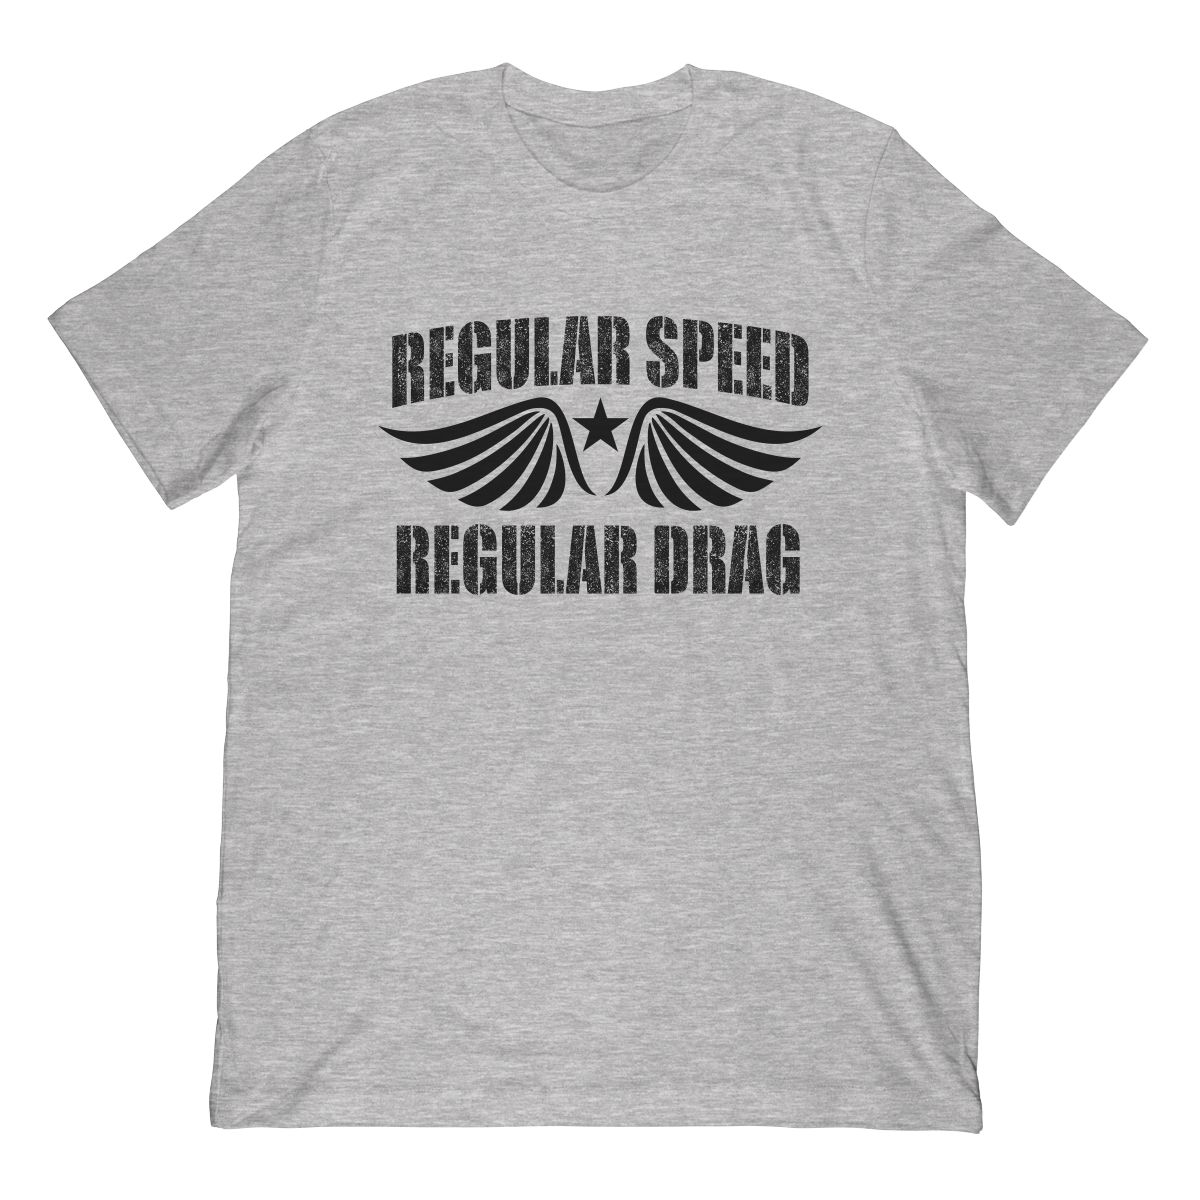 Funny Regular Speed Regular Drag In Black